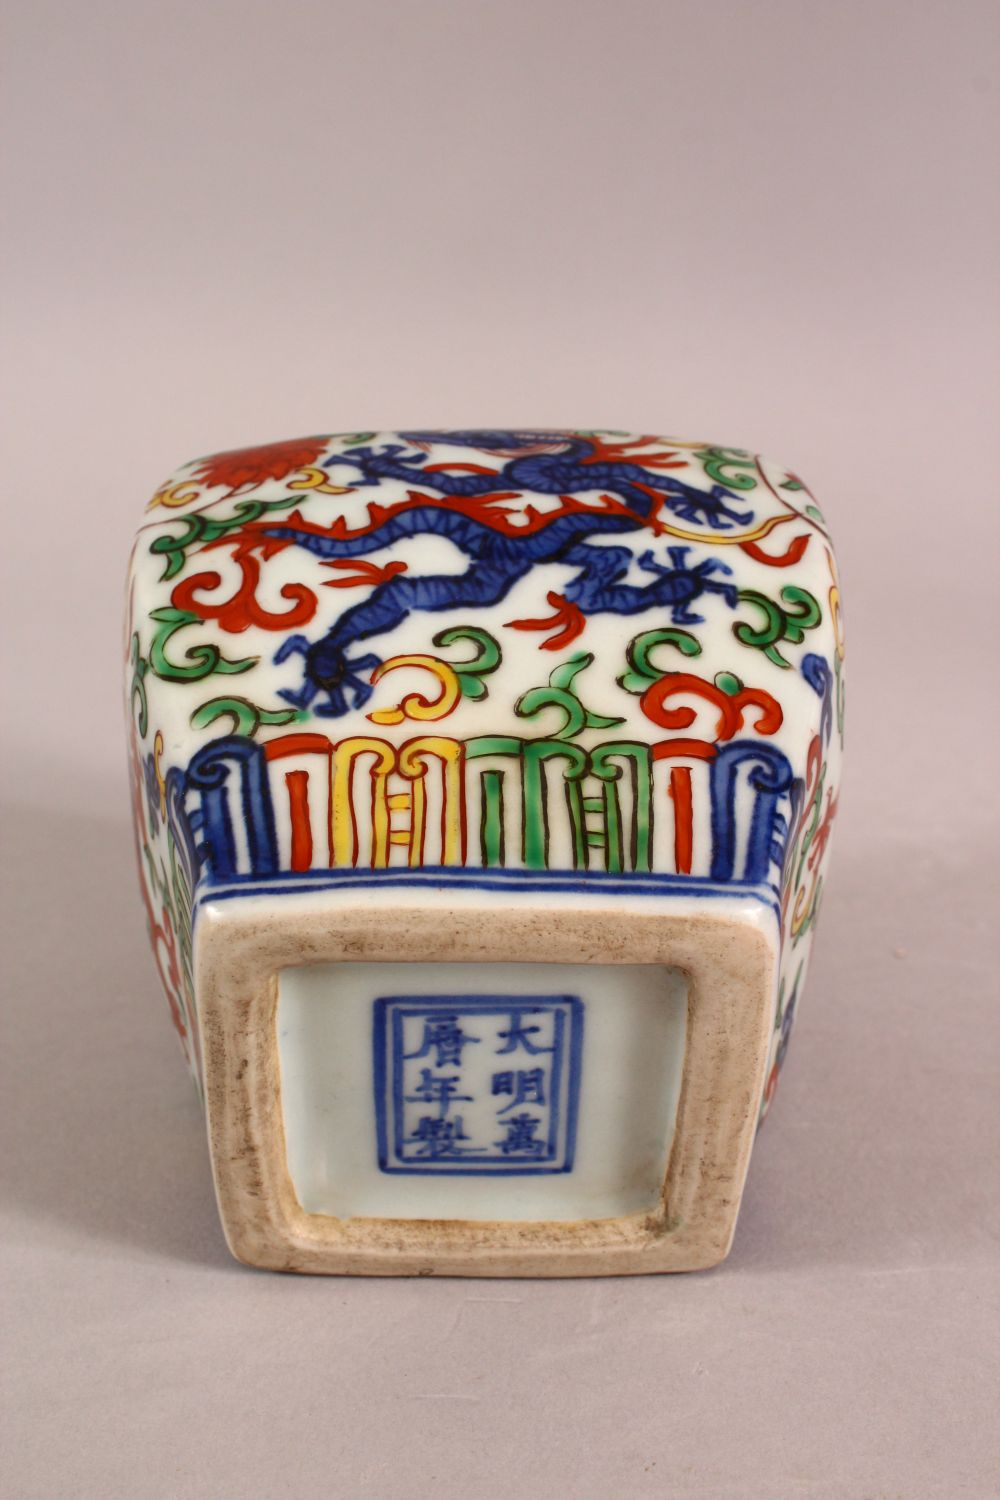 A SMALL CHINESE WUCAI STYLE VASE, the body painted with dragons and flowers, six character mark to - Image 5 of 6